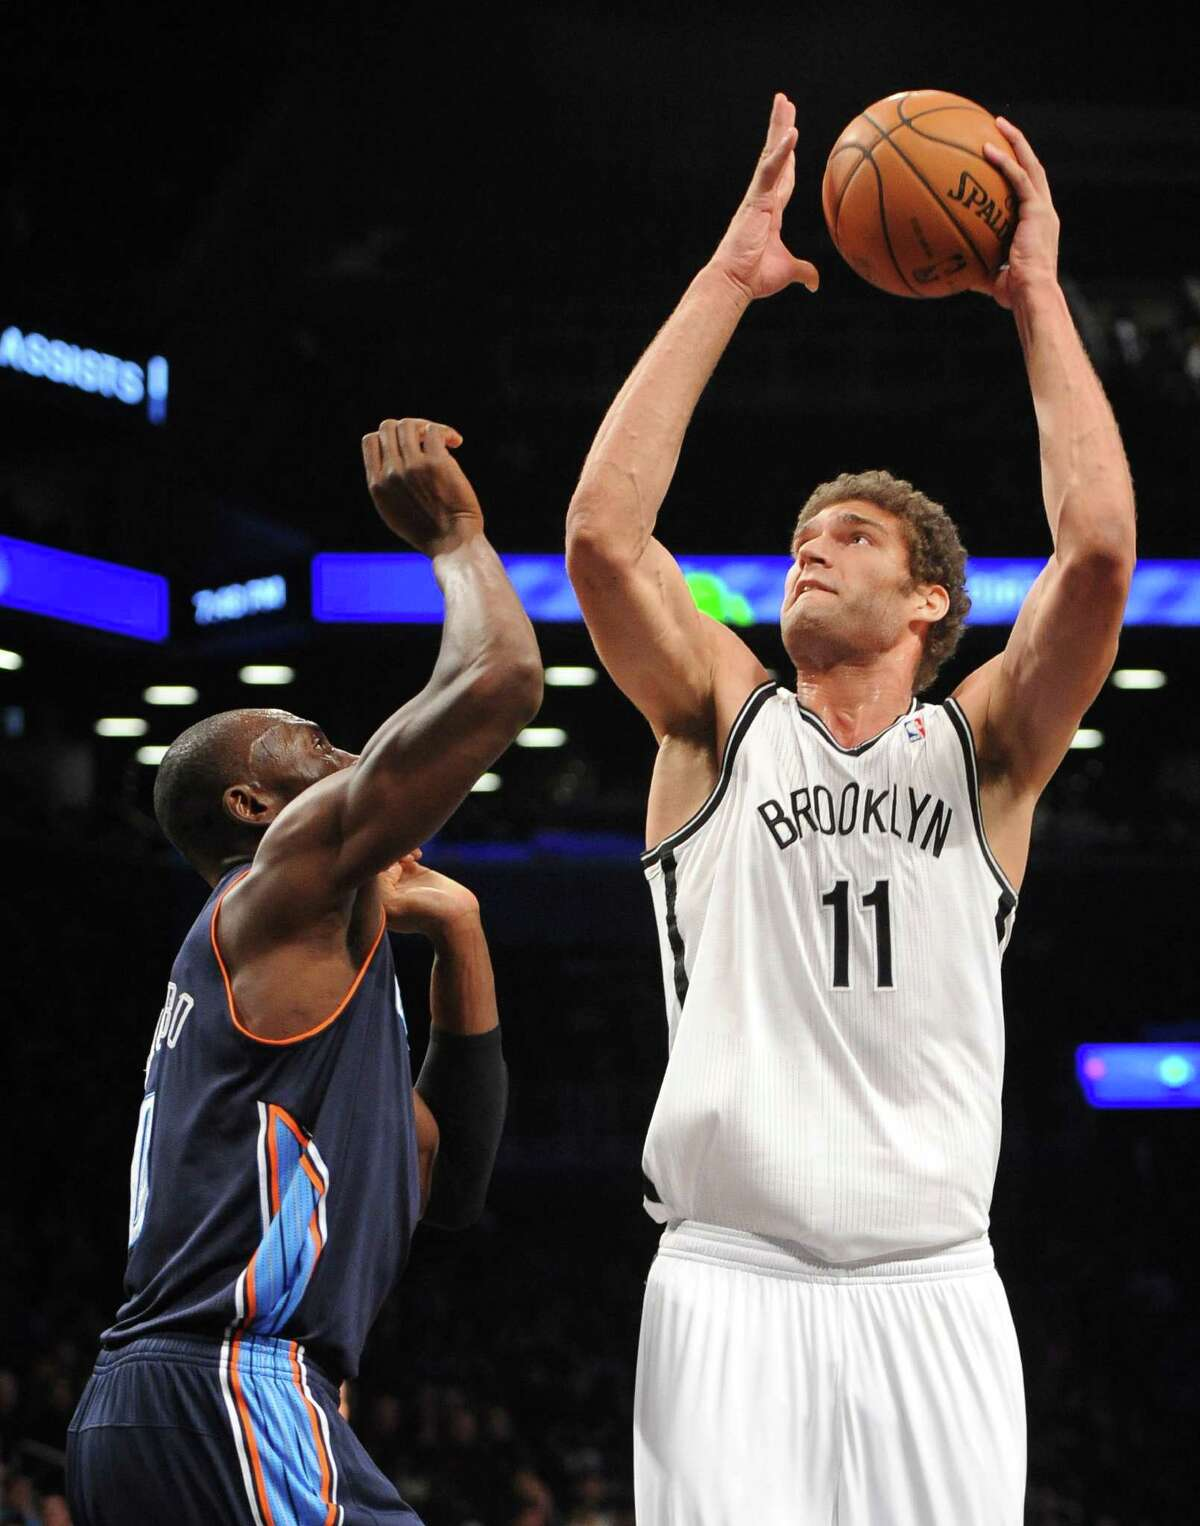 Brooklyn Nets' Brook Lopez (11) shoots over Charlotte Bobcats' Bismack Biyombo (0) in the first half of an NBA basketball game on Friday, Dec., 28, 2012 at Barclays Center in New York. The Nets won 97-81. (AP Photo/Kathy Kmonicek)